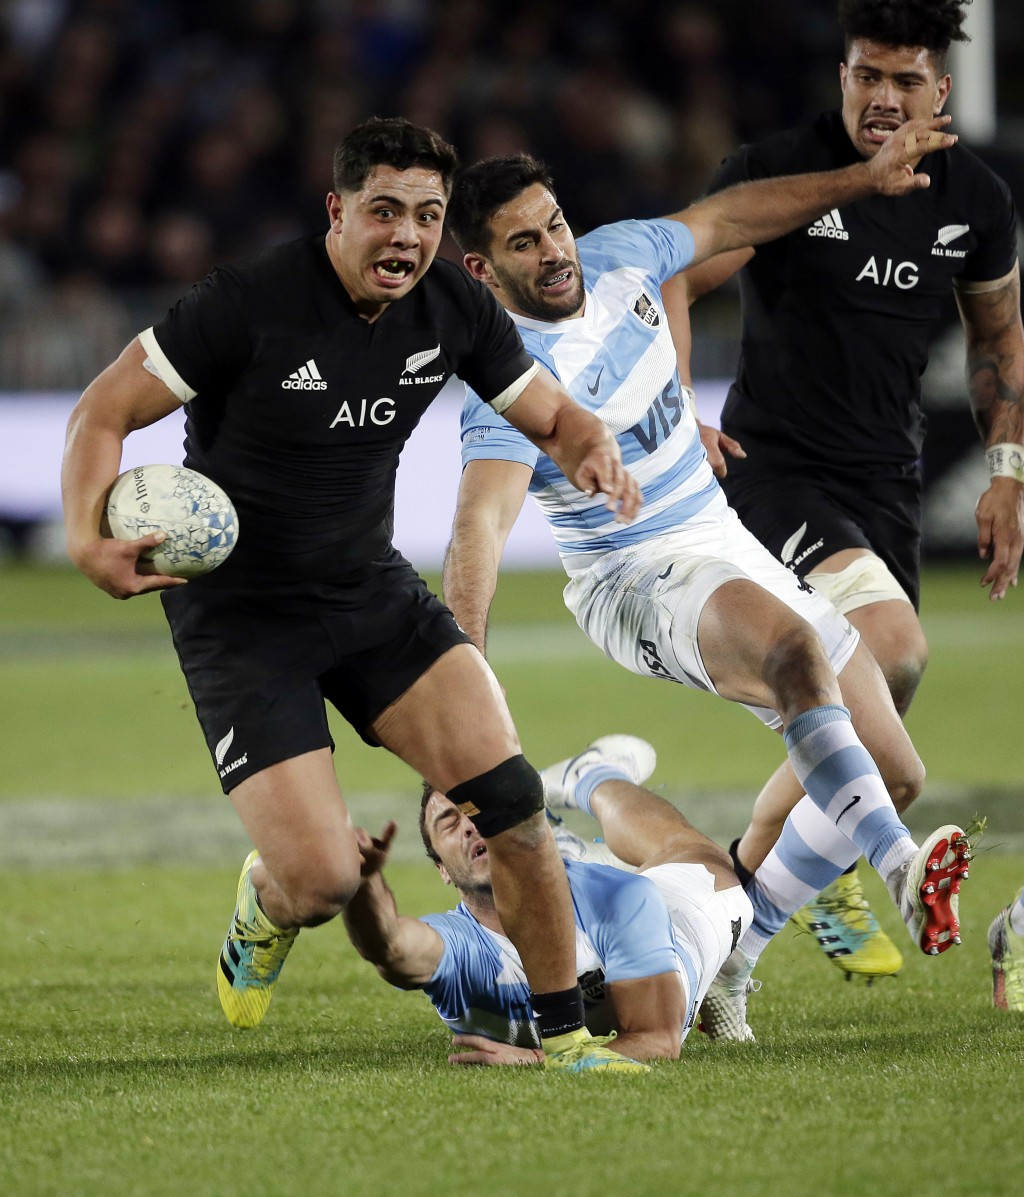 All Blacks Anton Lienert-Brown, left, attacks against the Pumas at Trafalgar Park in Nelson, New Zealand, Saturday, Sept. 8, 2018. (AP Photo/Anthony P